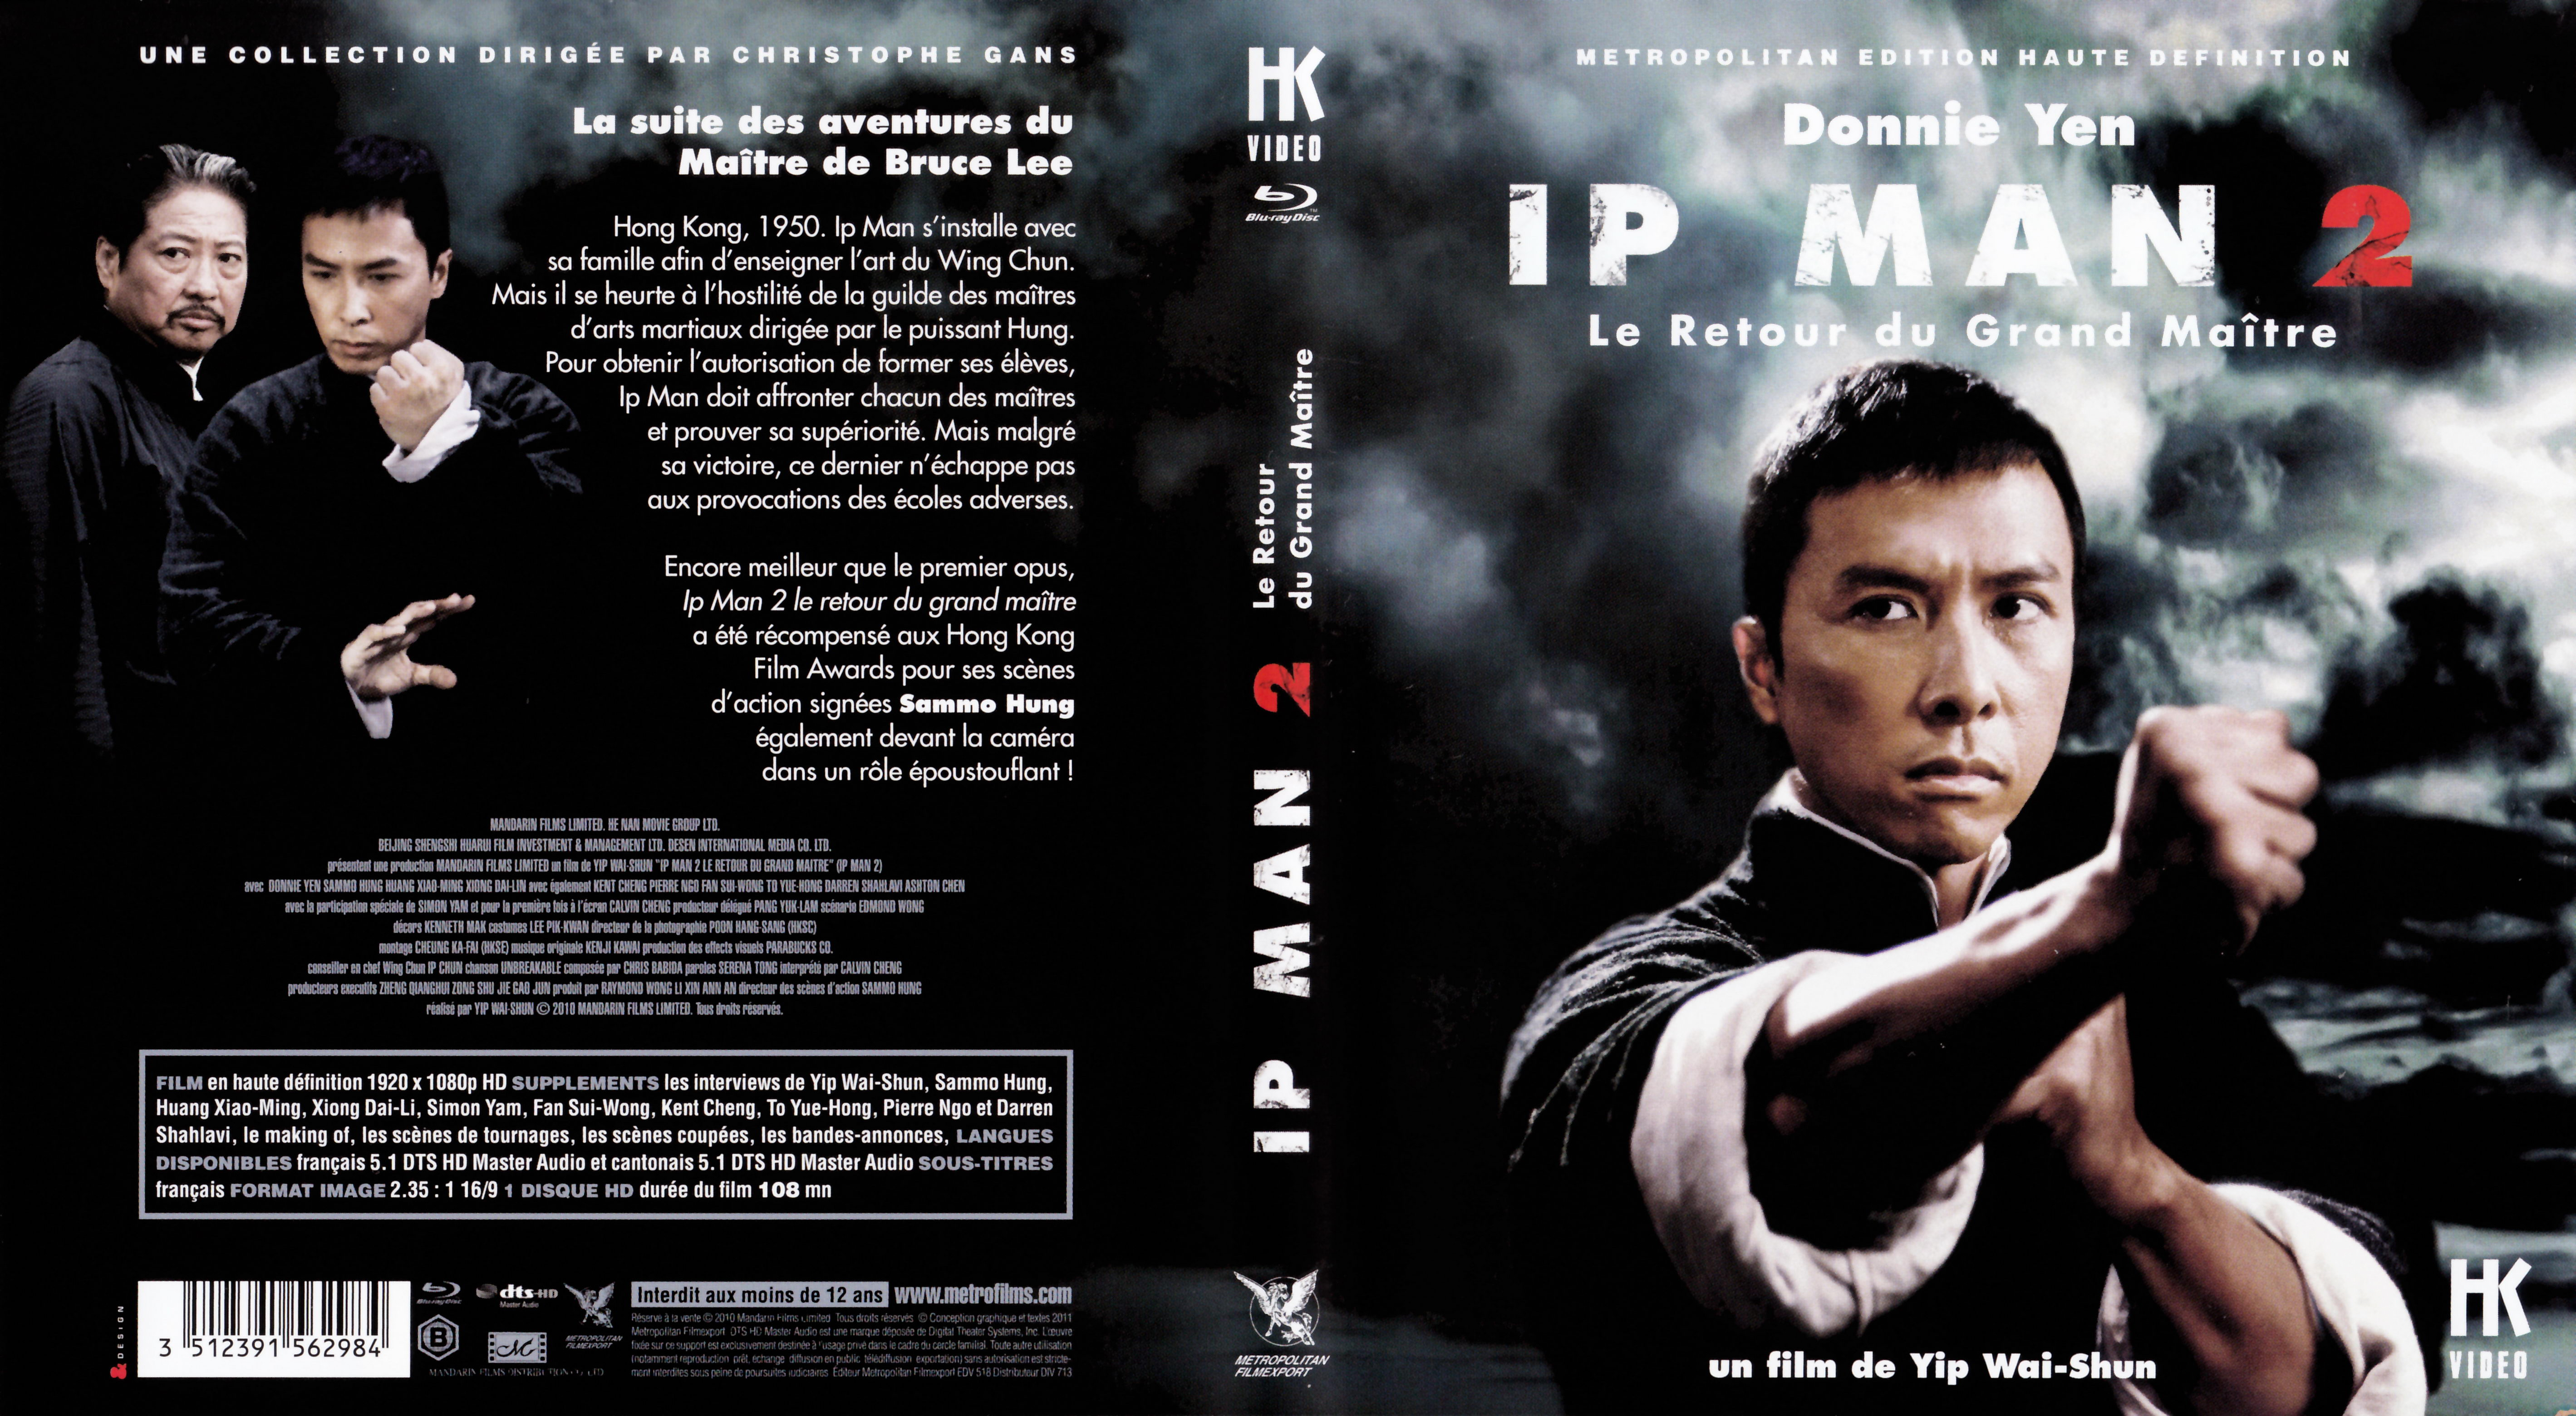 Film Ip Man 1 Francais Call Of Duty Ghost Map Pack 2 Release